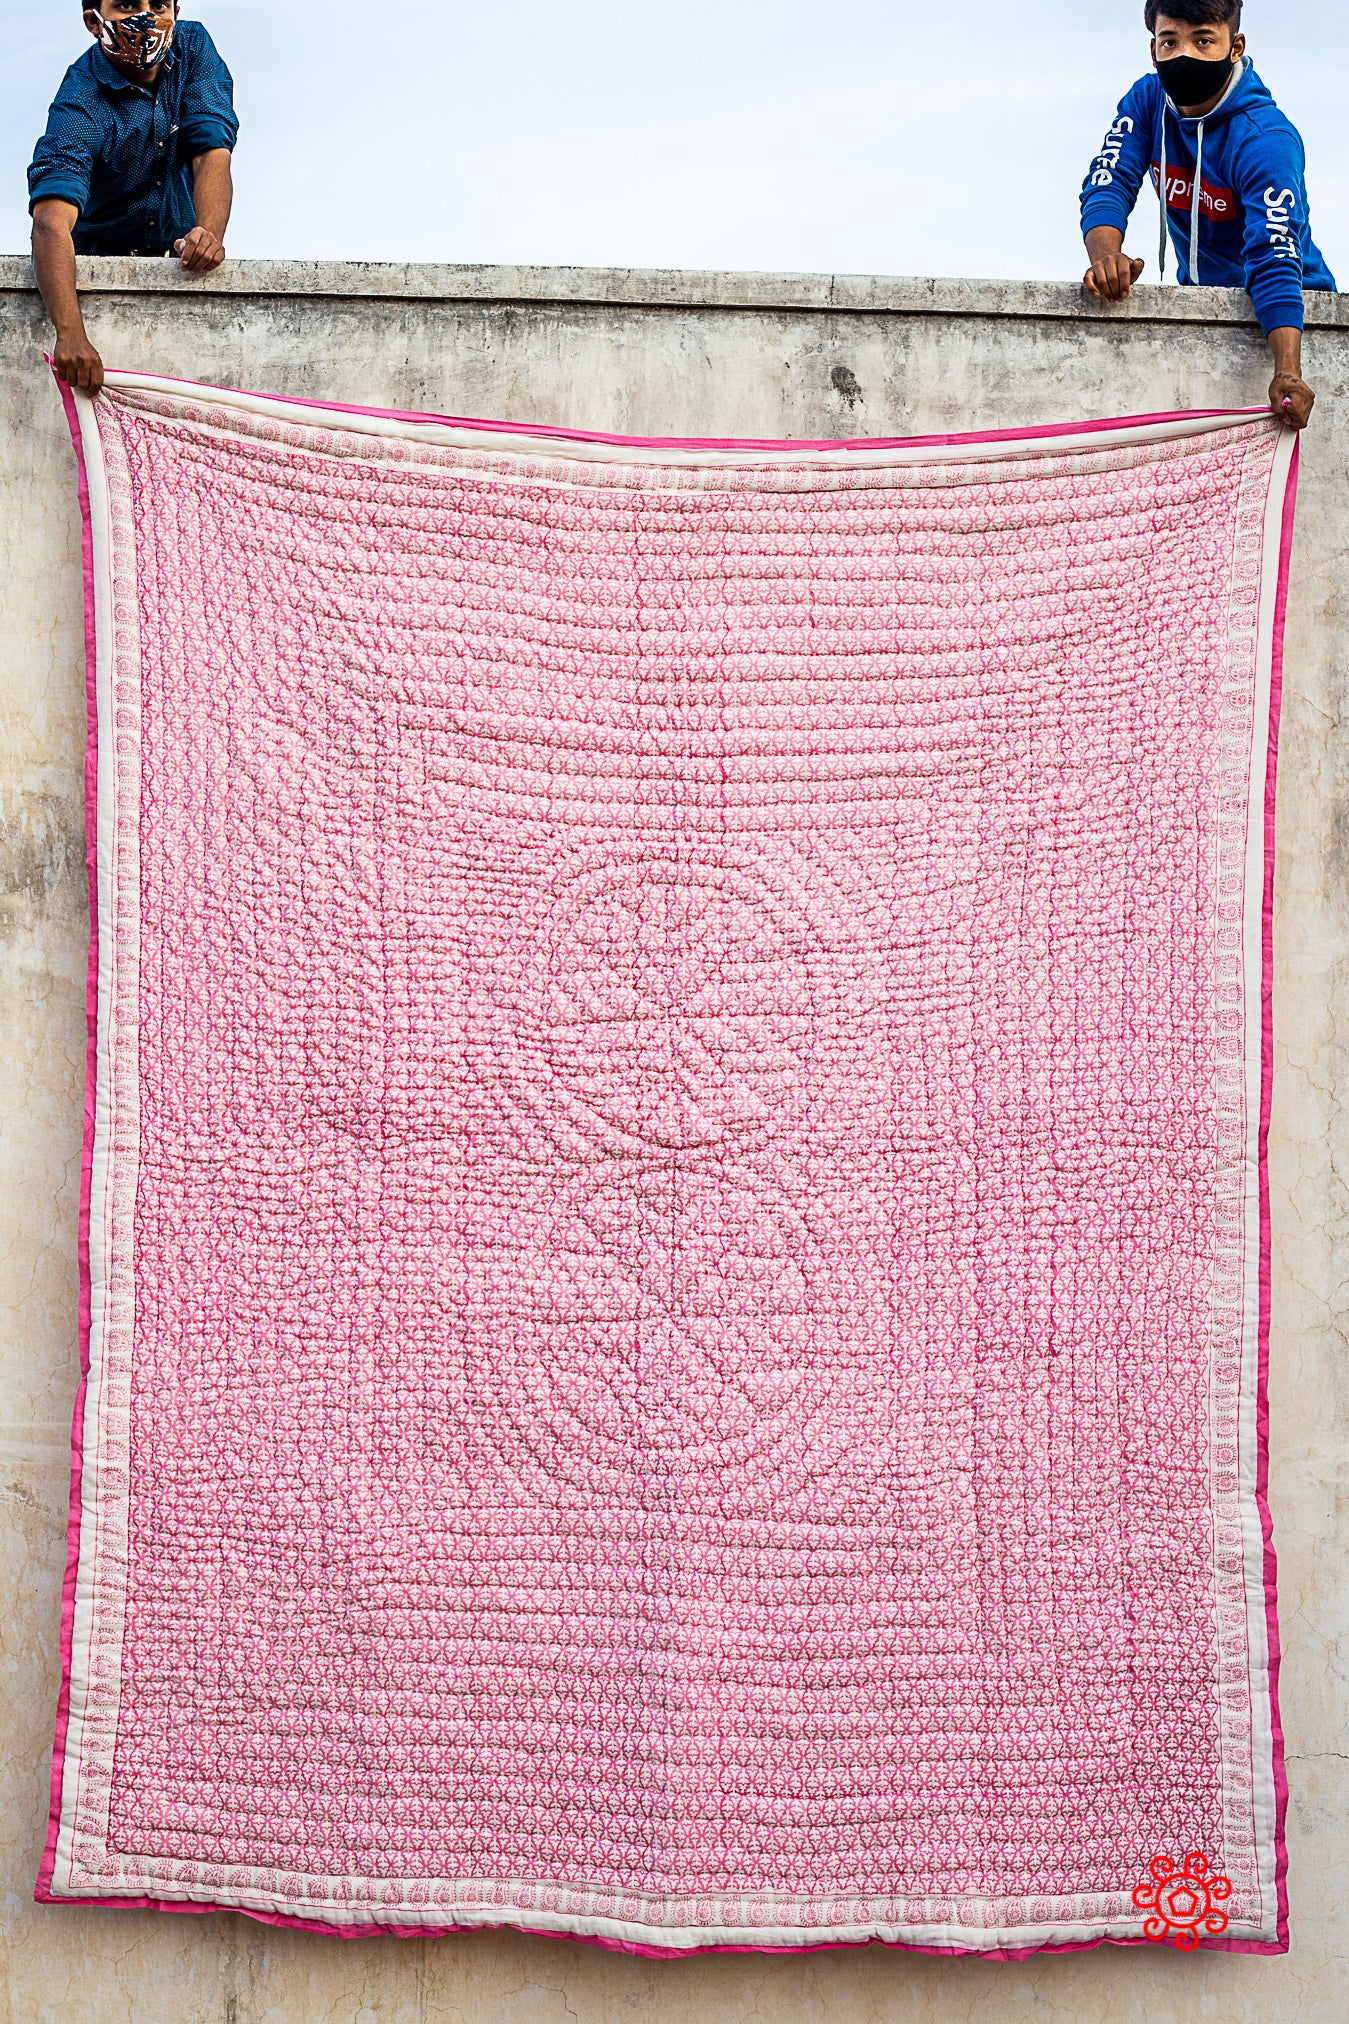 Queen Quilt,100 Percent Handmade, Hand Block printed Quilt, Jaipuri Quilt, Hand Quilted, Natural Cotton filling, Carnation Pink QBP 408